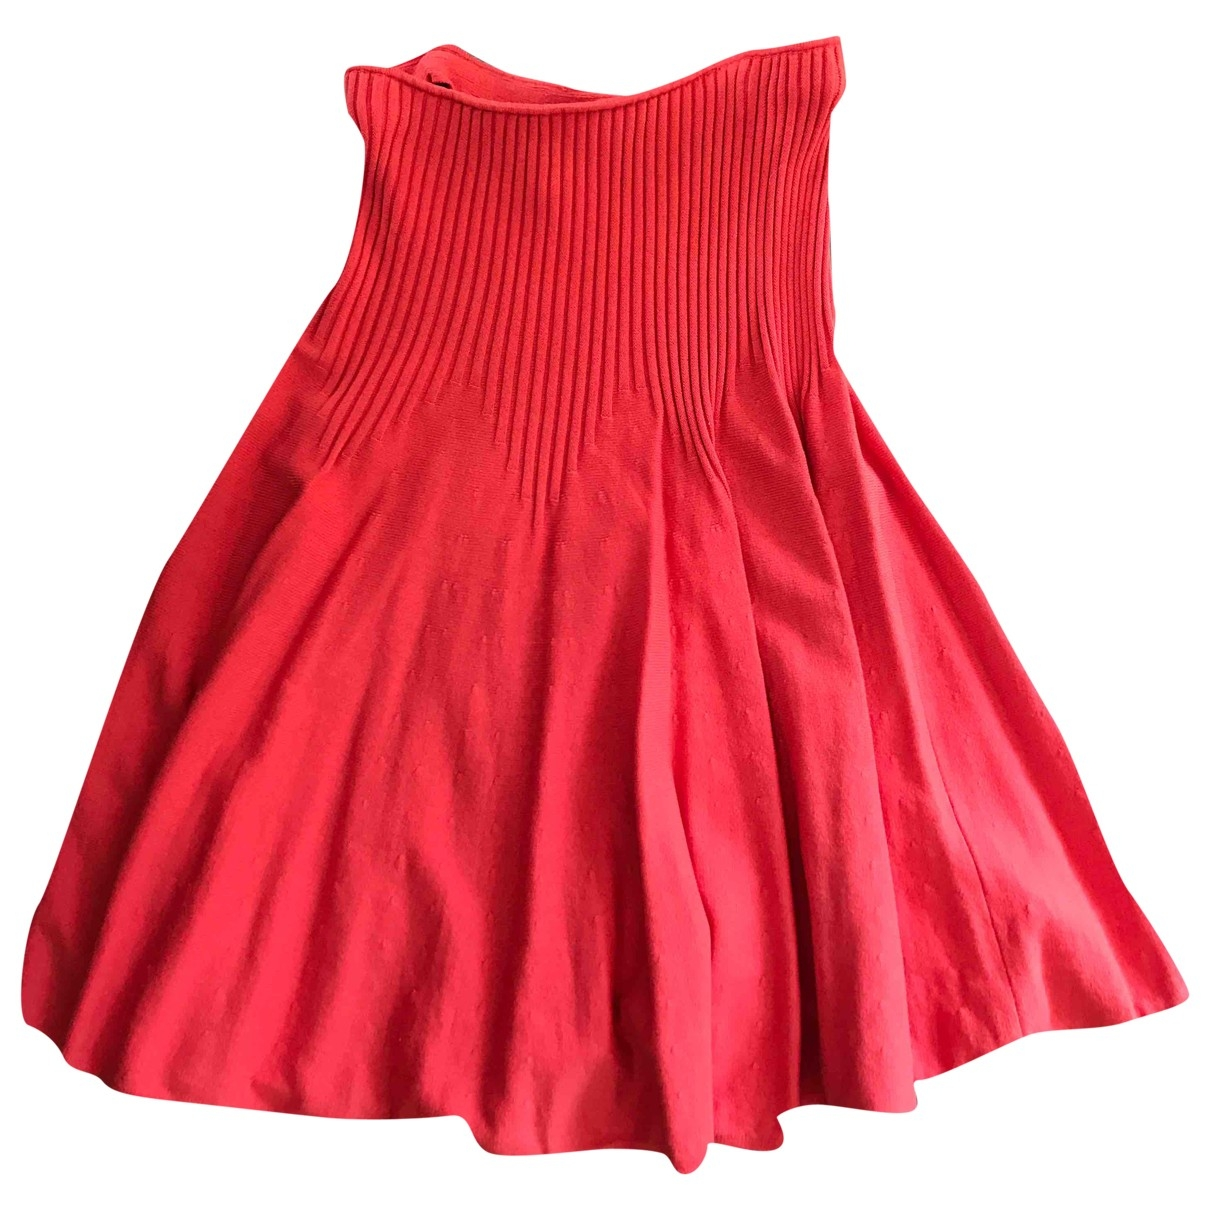 Malo \N Red Cotton skirt for Women 42 IT